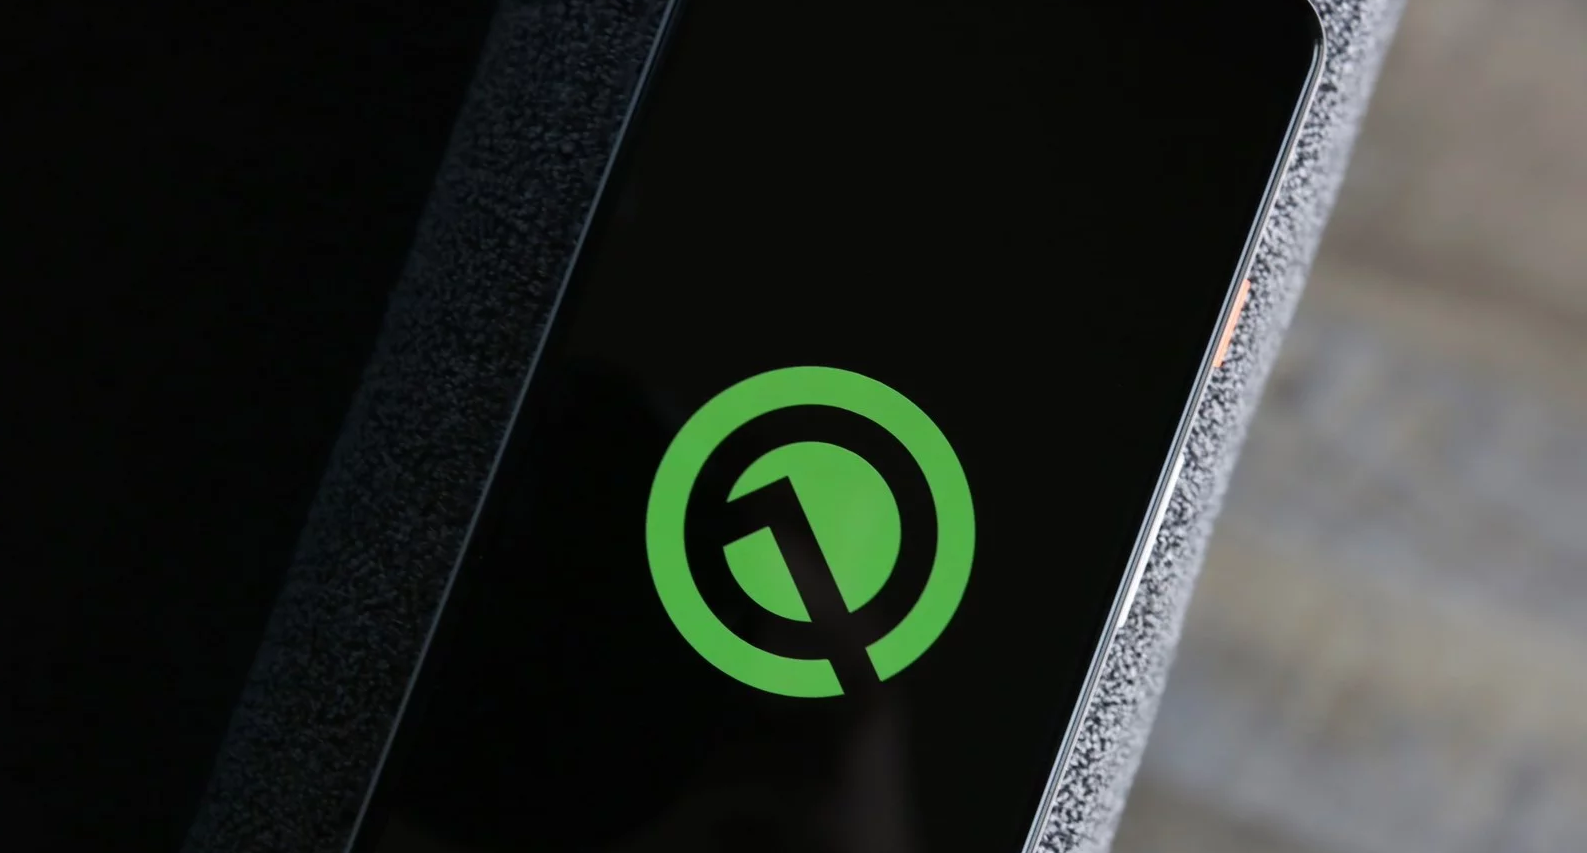 Android Q beta 4 is finally out and here's everything new